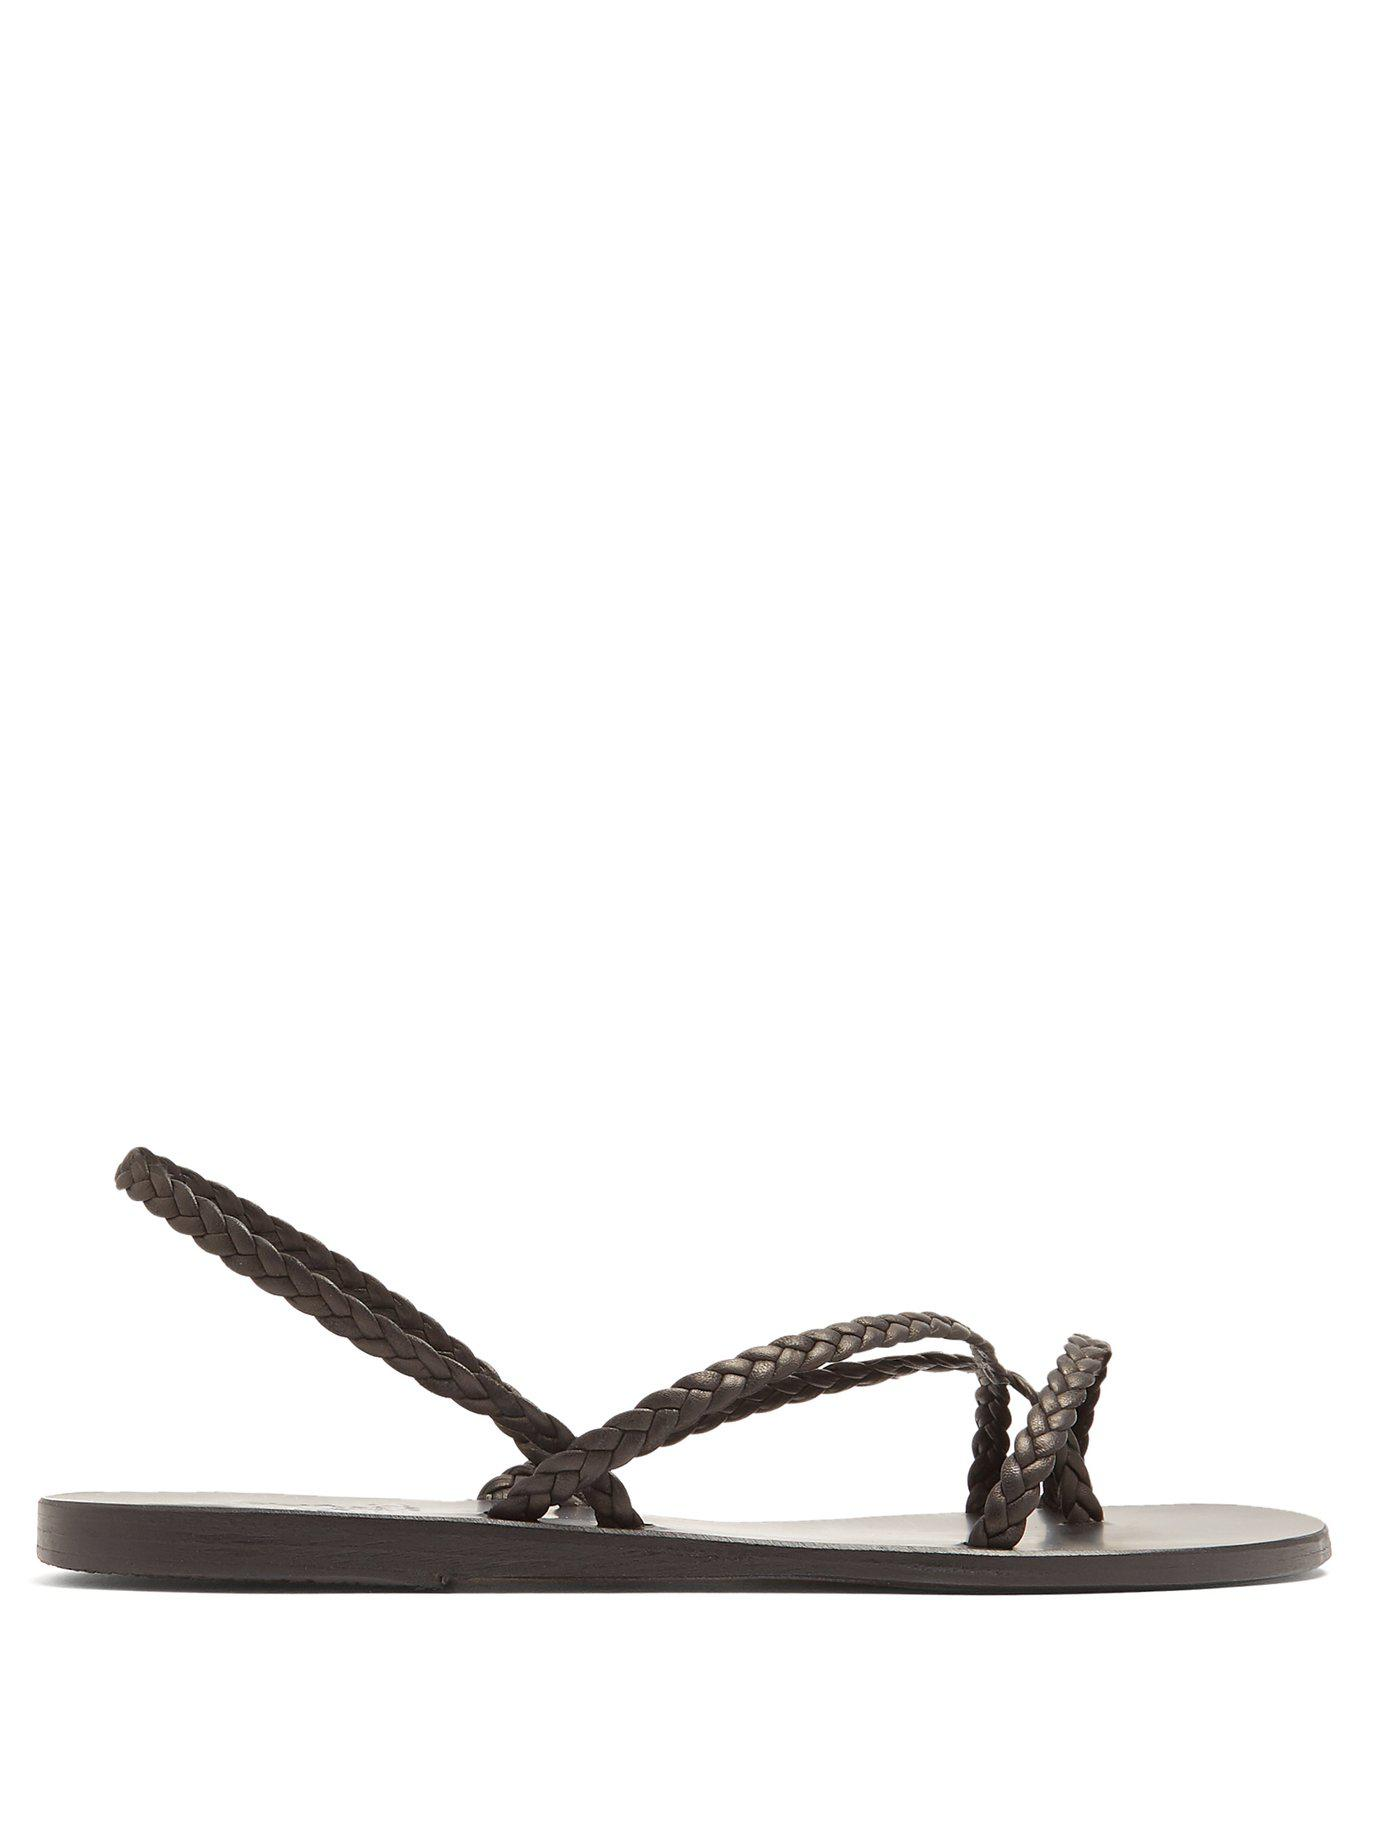 318e2dd82a8bac Lyst - Ancient Greek Sandals Yianna Braided-leather Sandals in Black